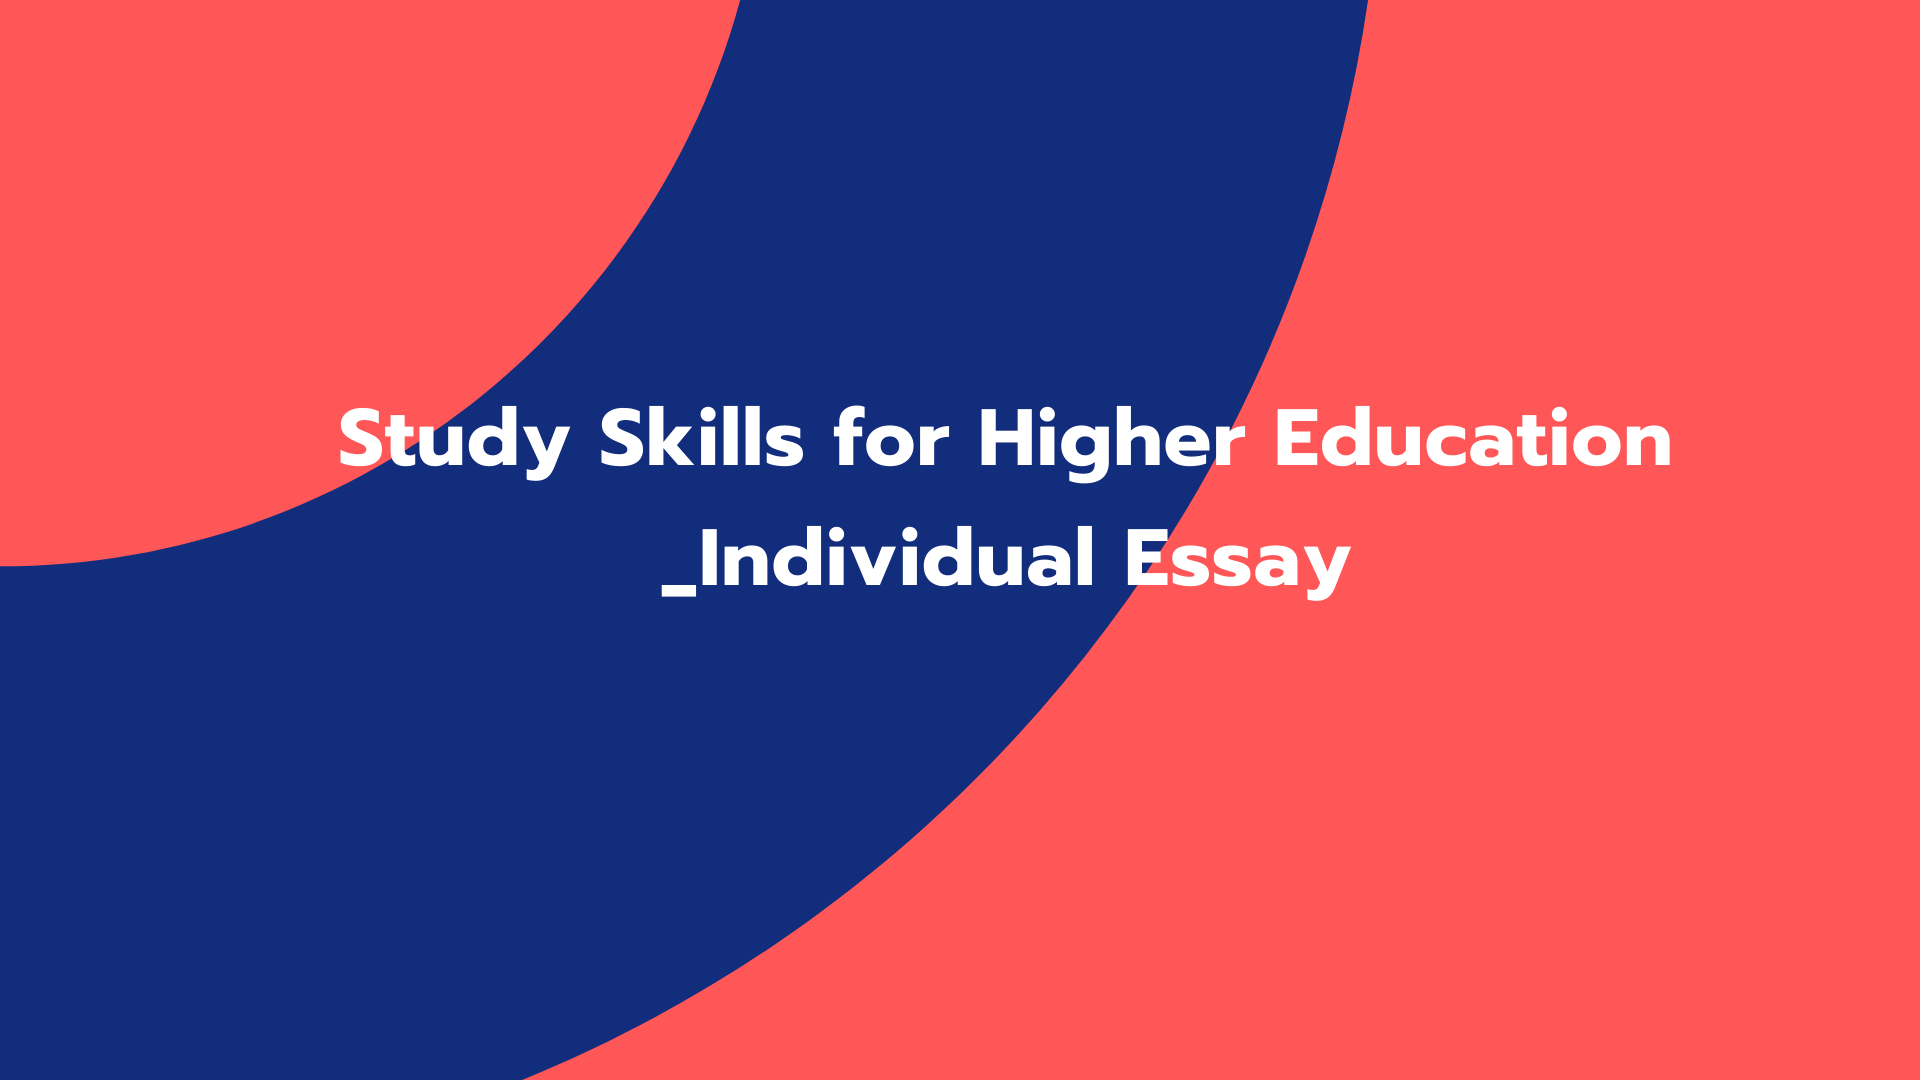 Study Skills for Higher Education _Individual Essay